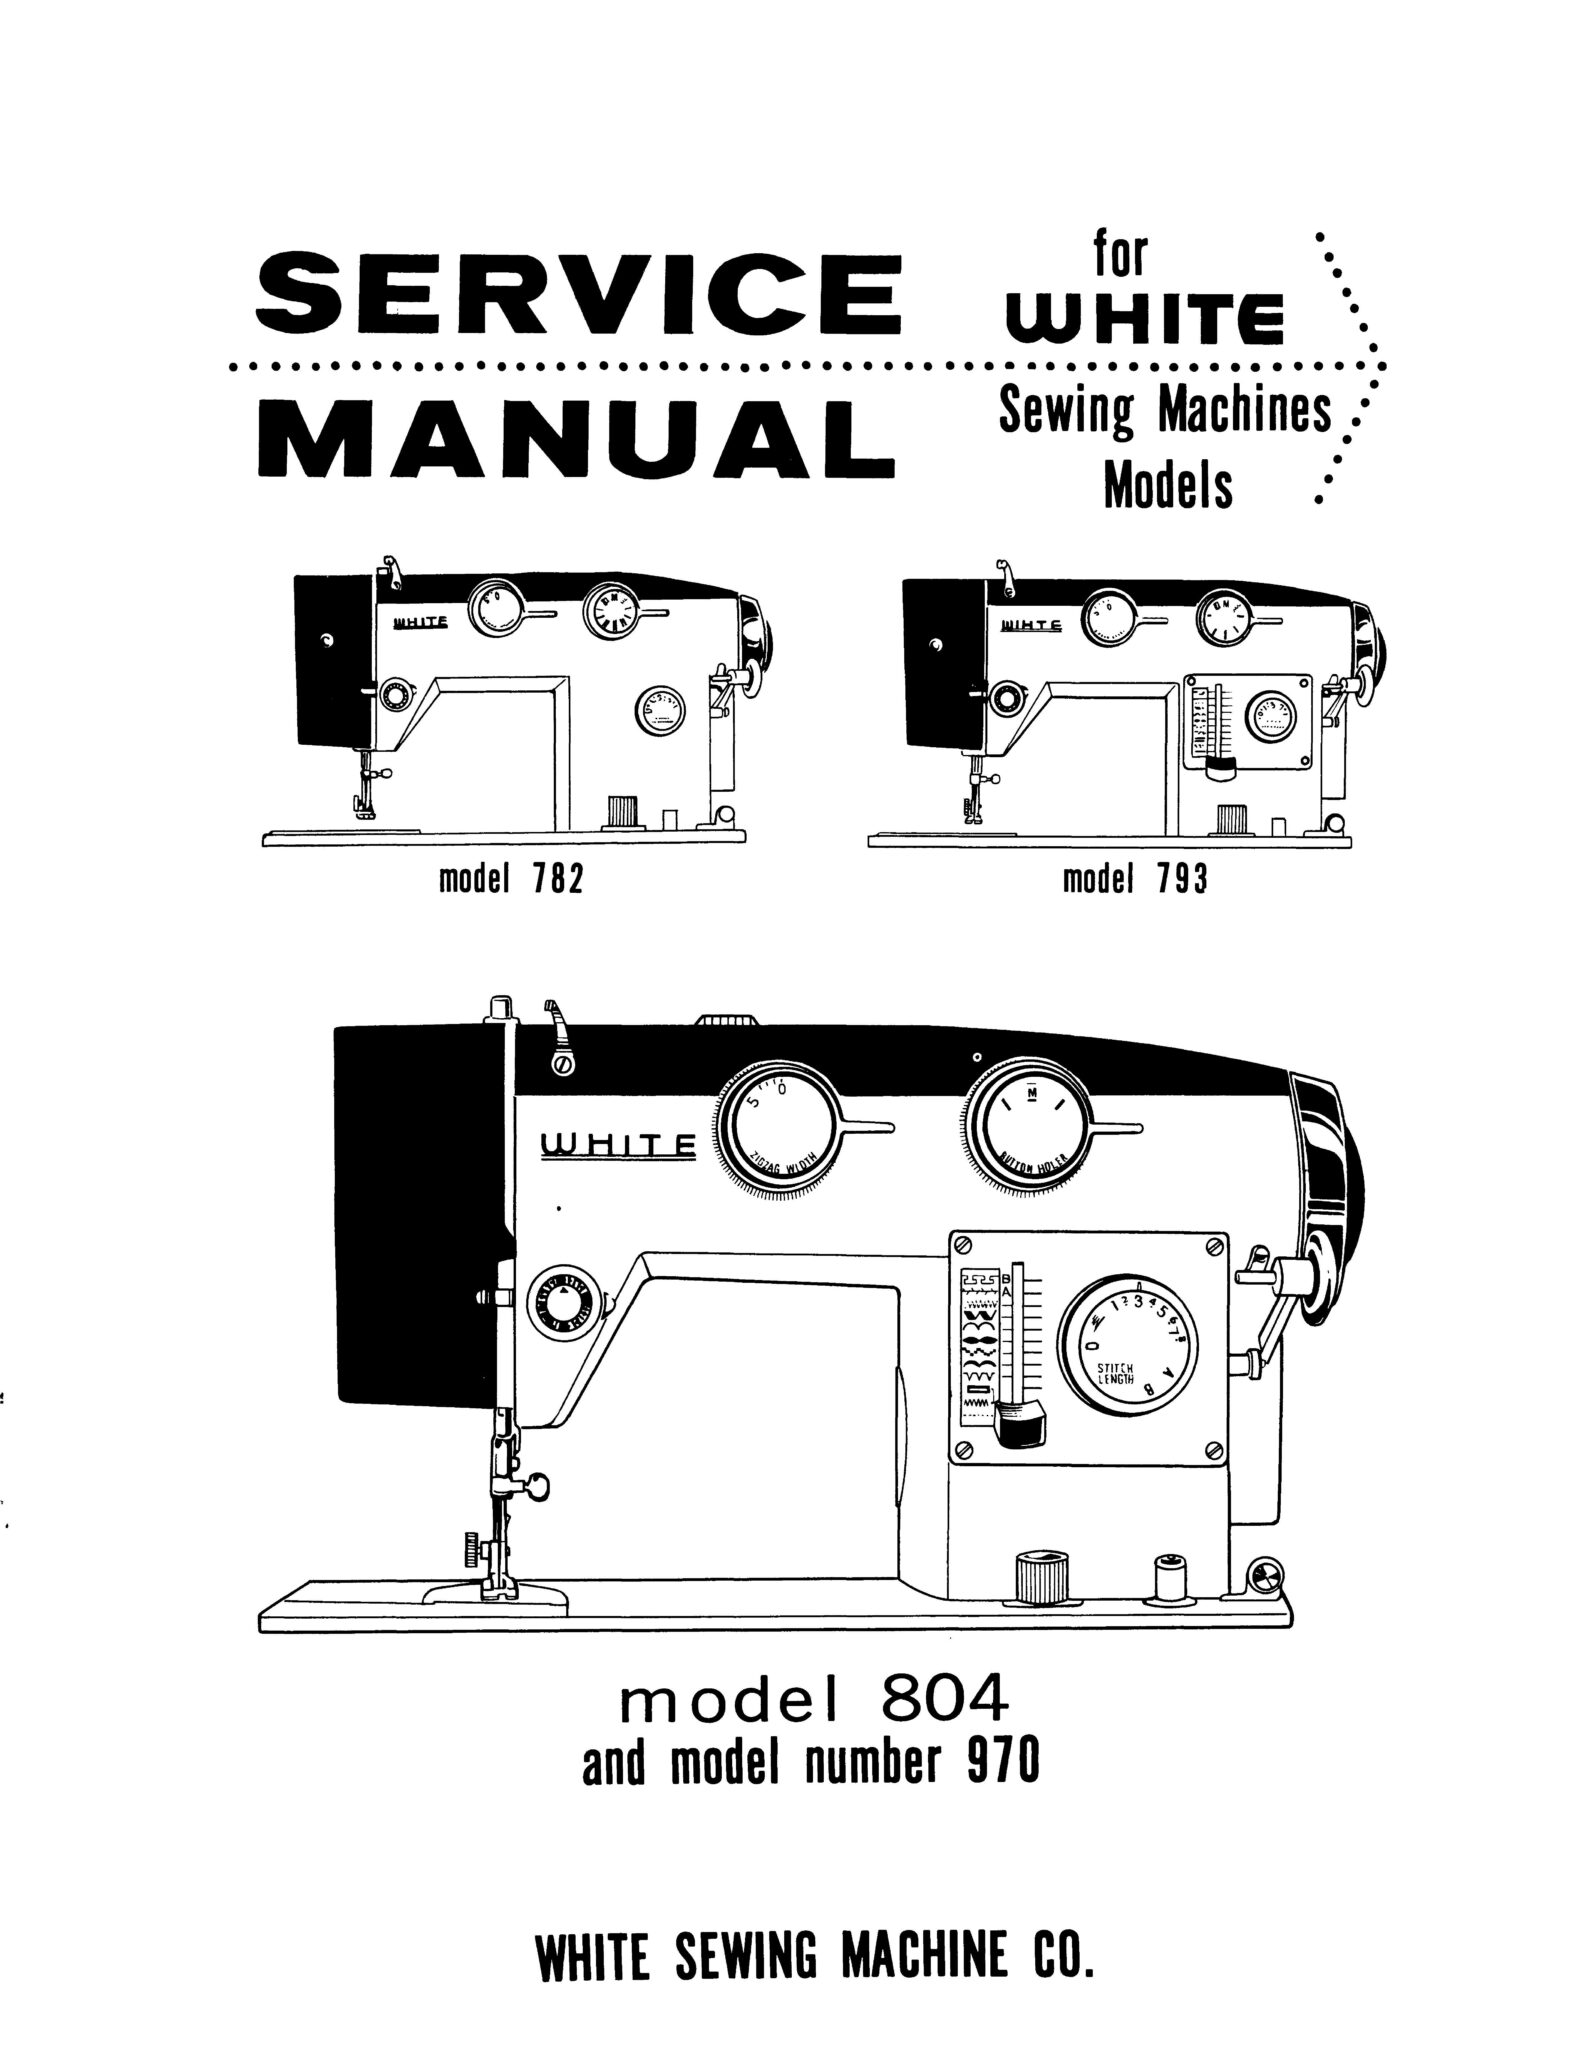 Service Manual & Parts List White 782, 793, 804, 970